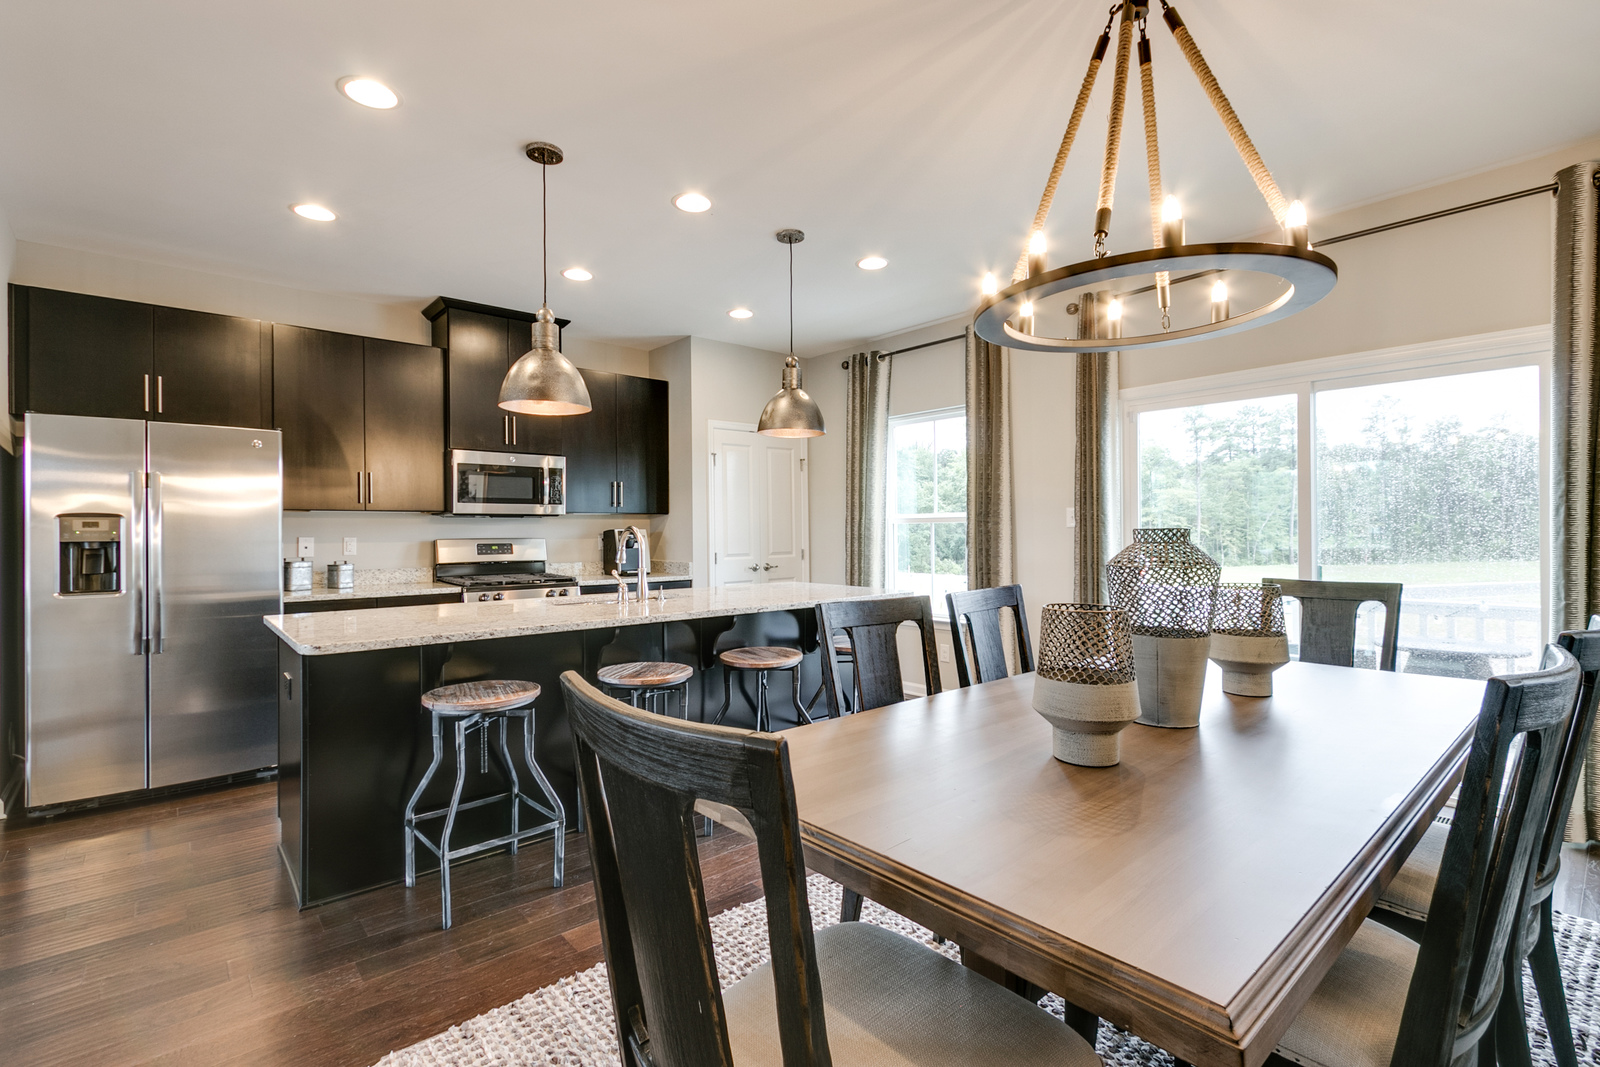 New Homes For Sale At Oakley S Bluff In Richmond Va